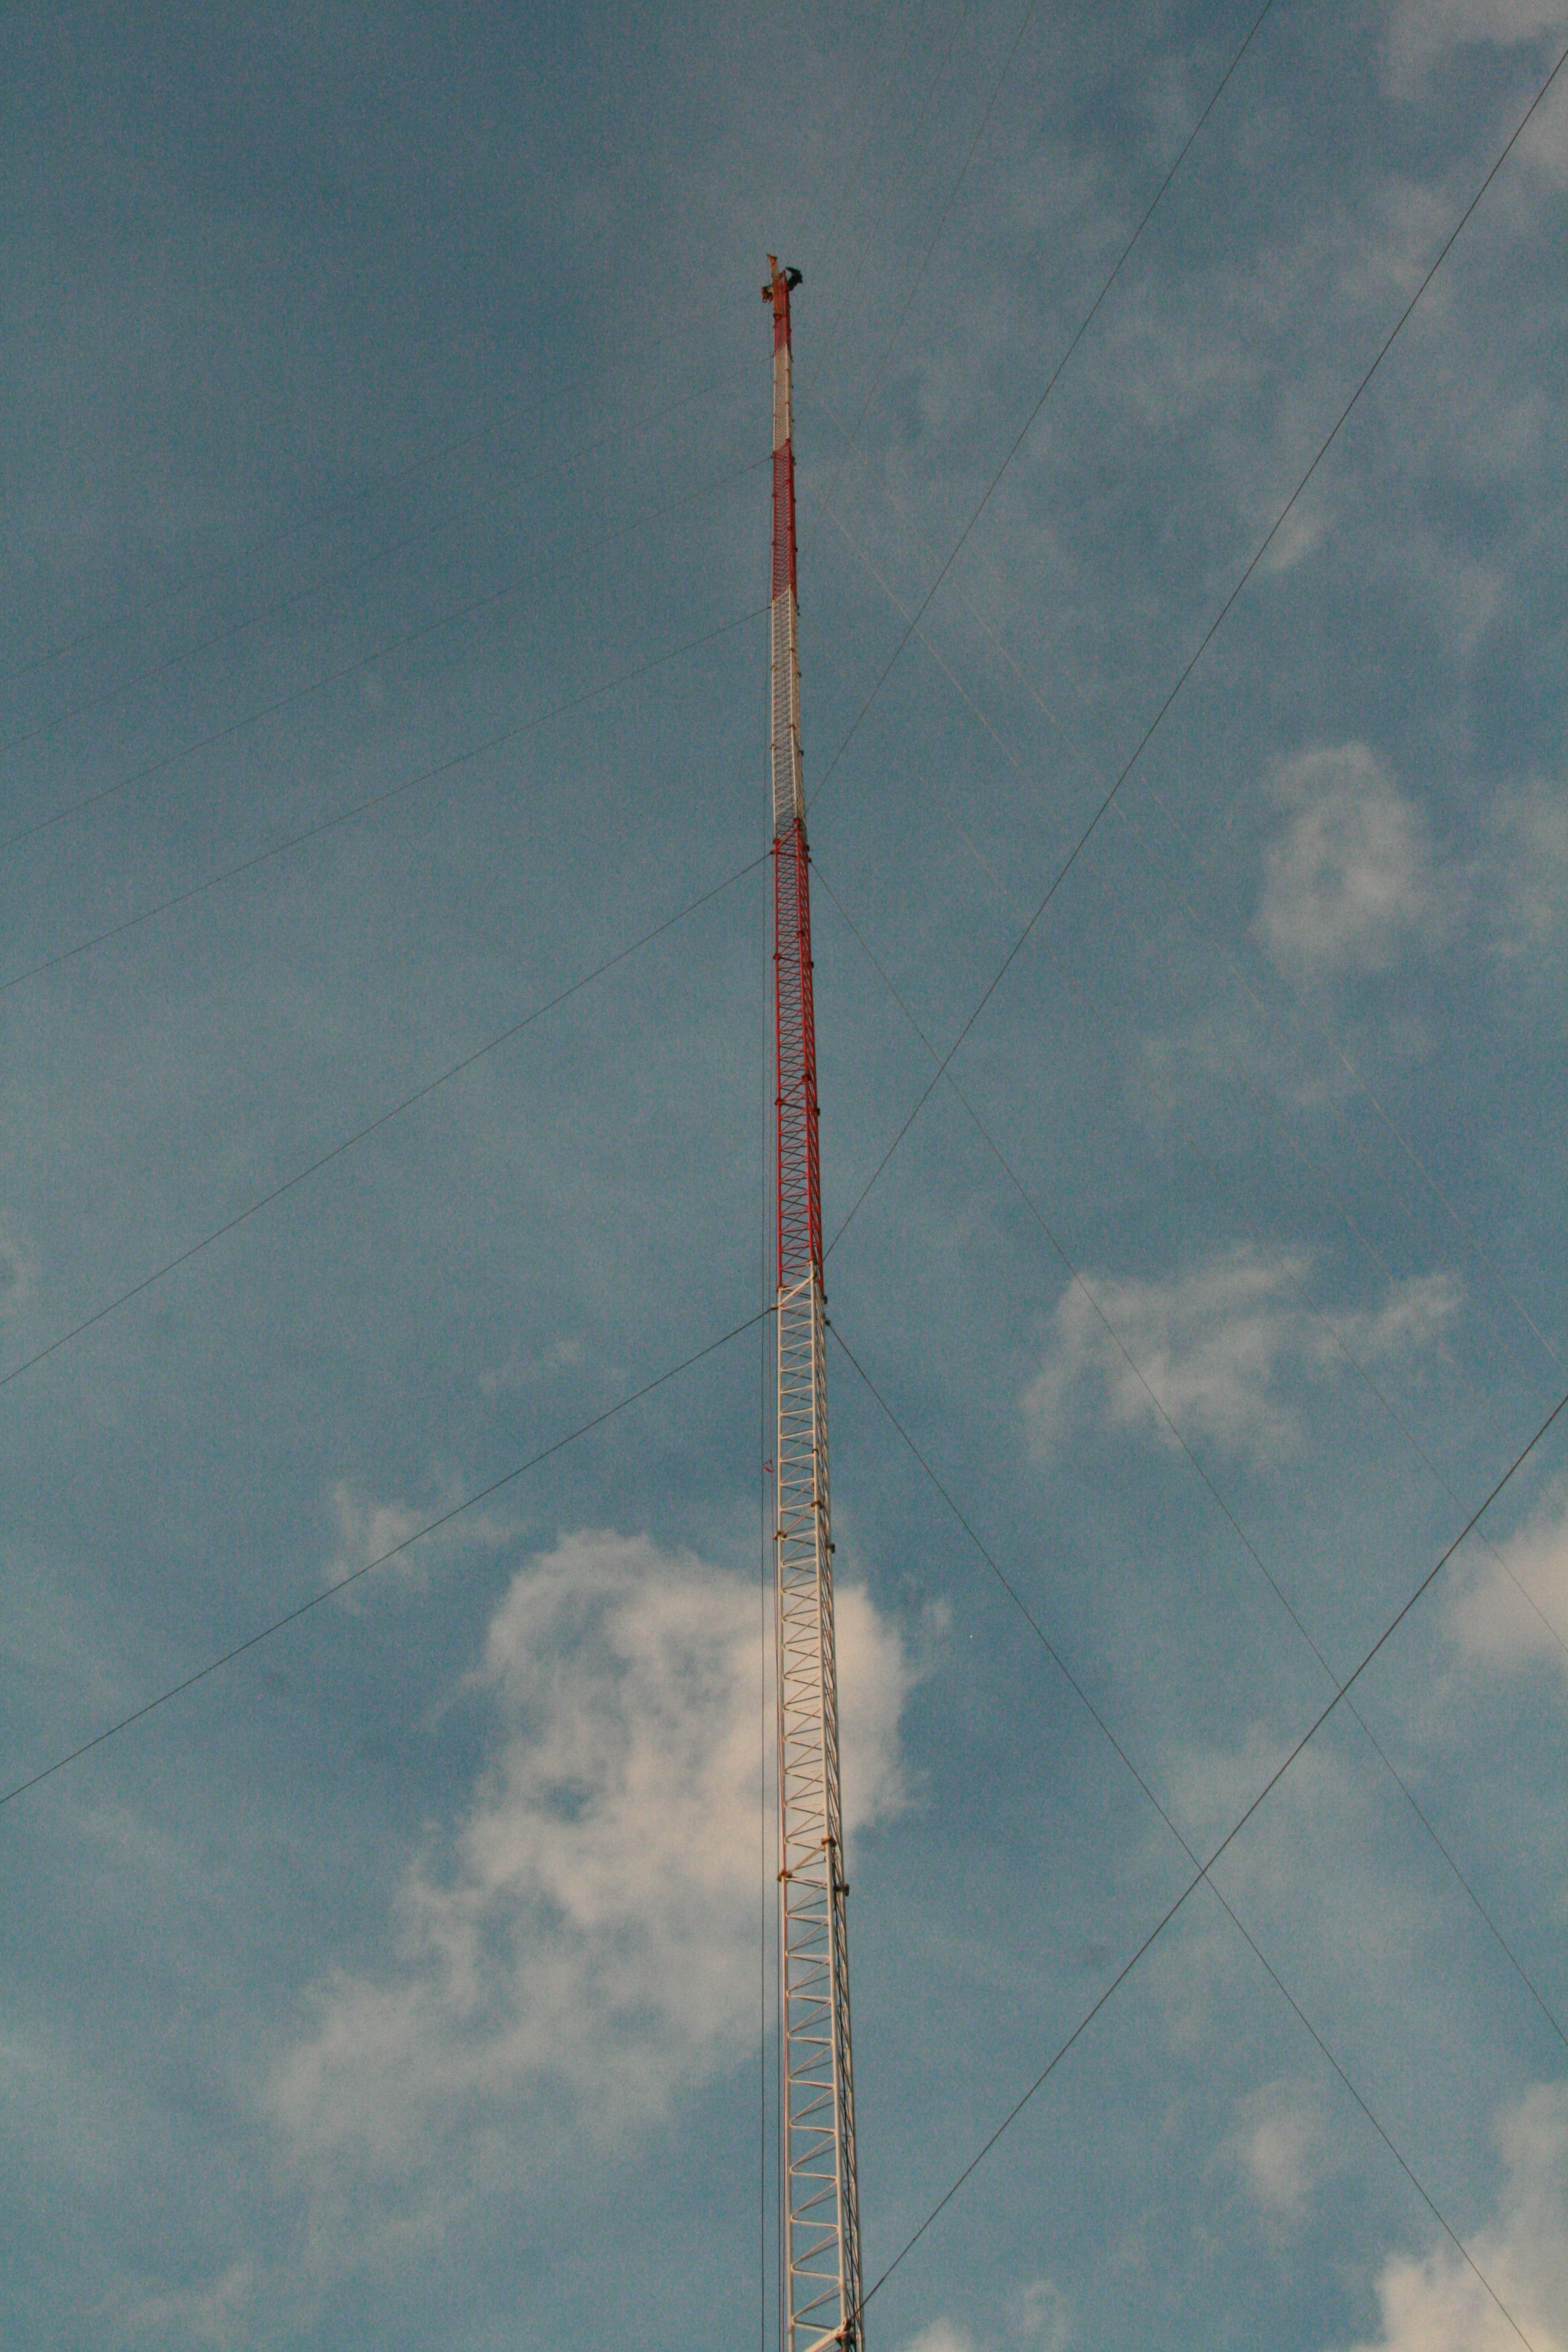 Topping out the tower Tallasee,AL. Tower, Cell site, Pics